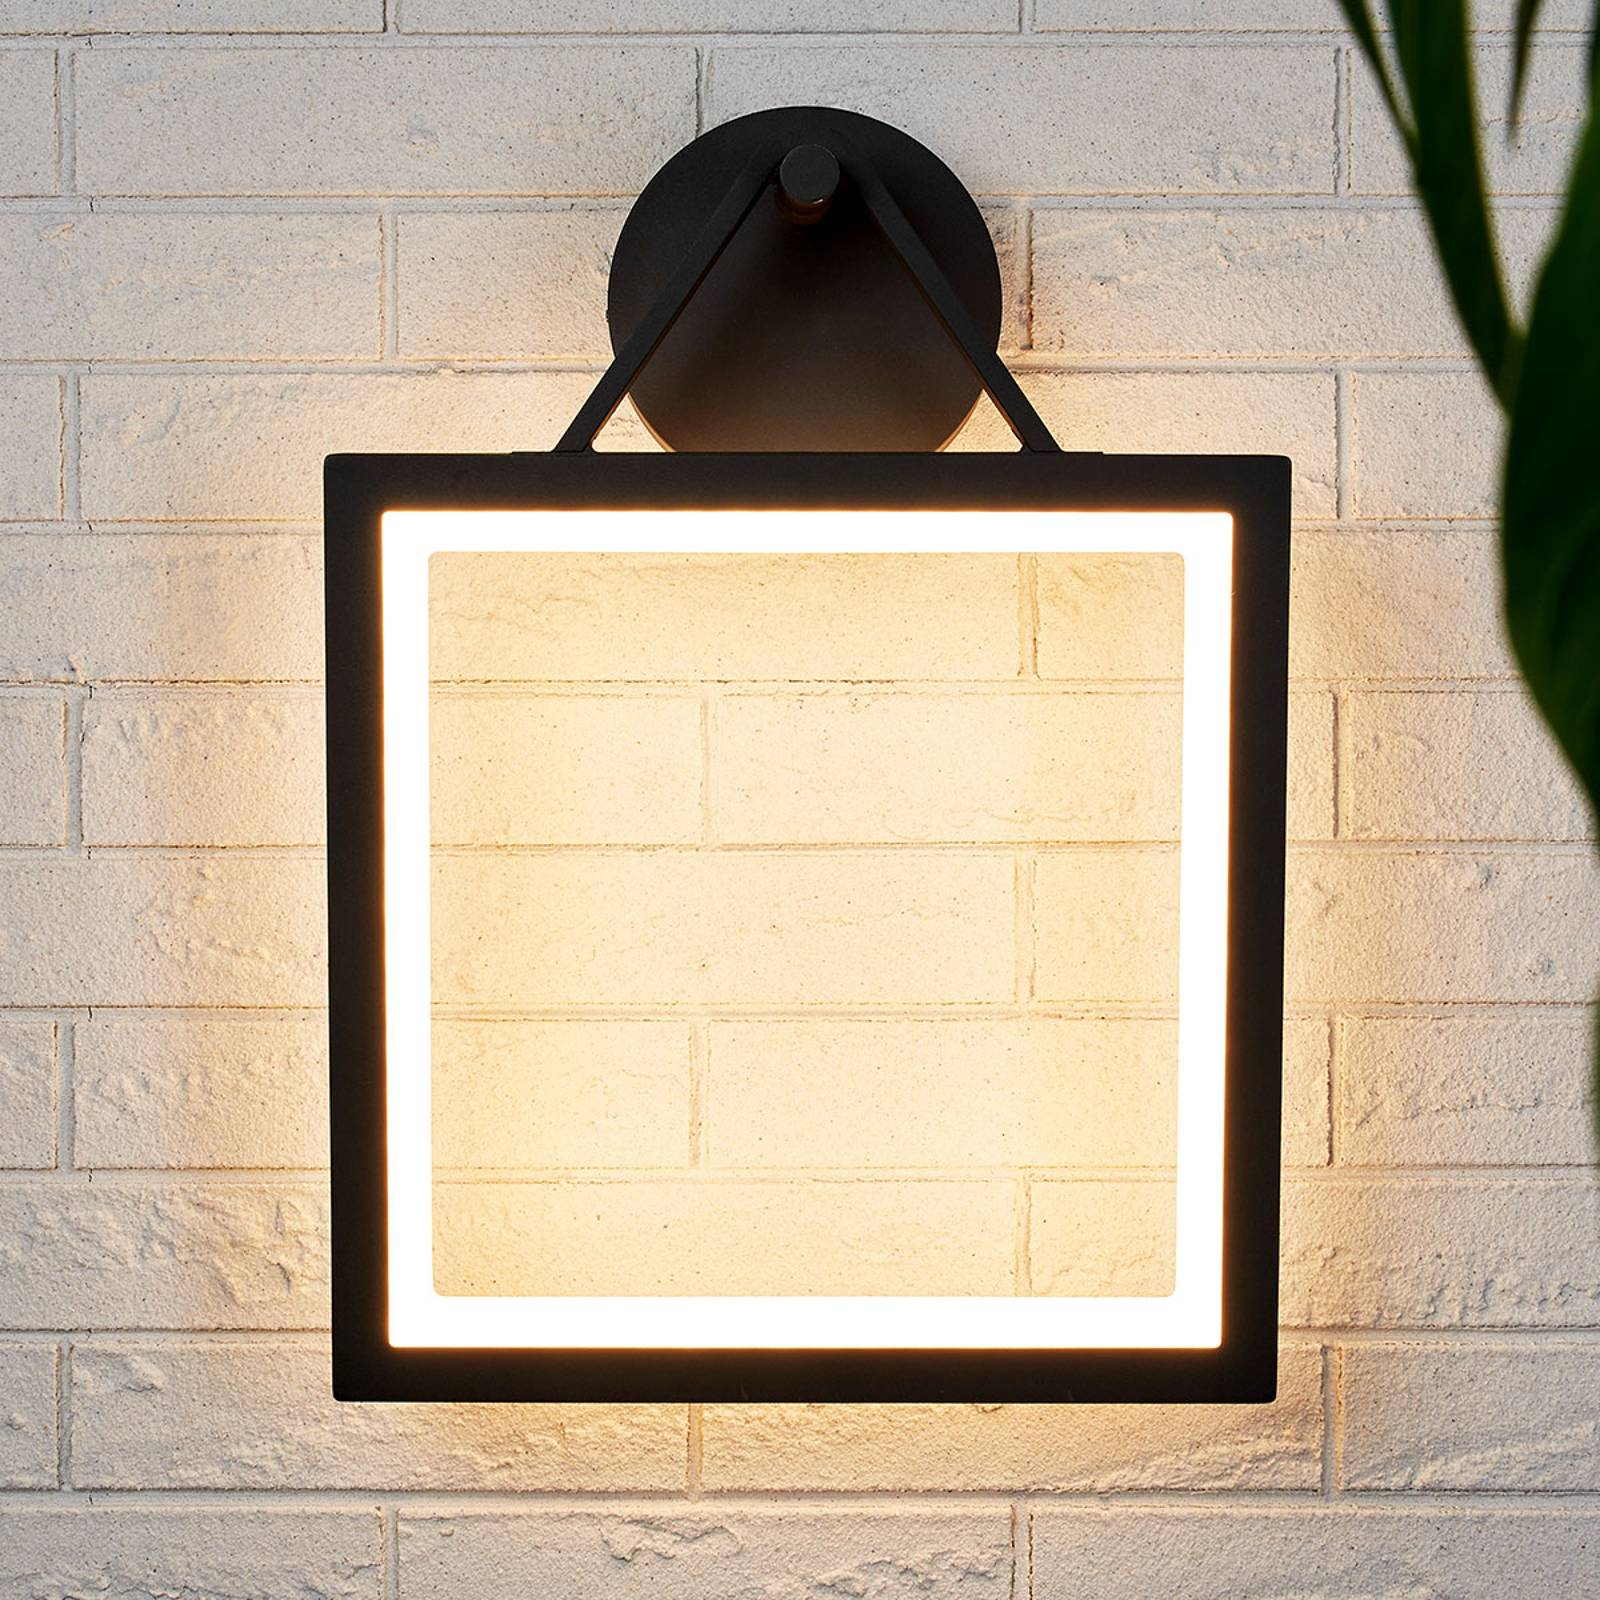 Frame-shaped LED outdoor wall lamp Mirco from Lucande